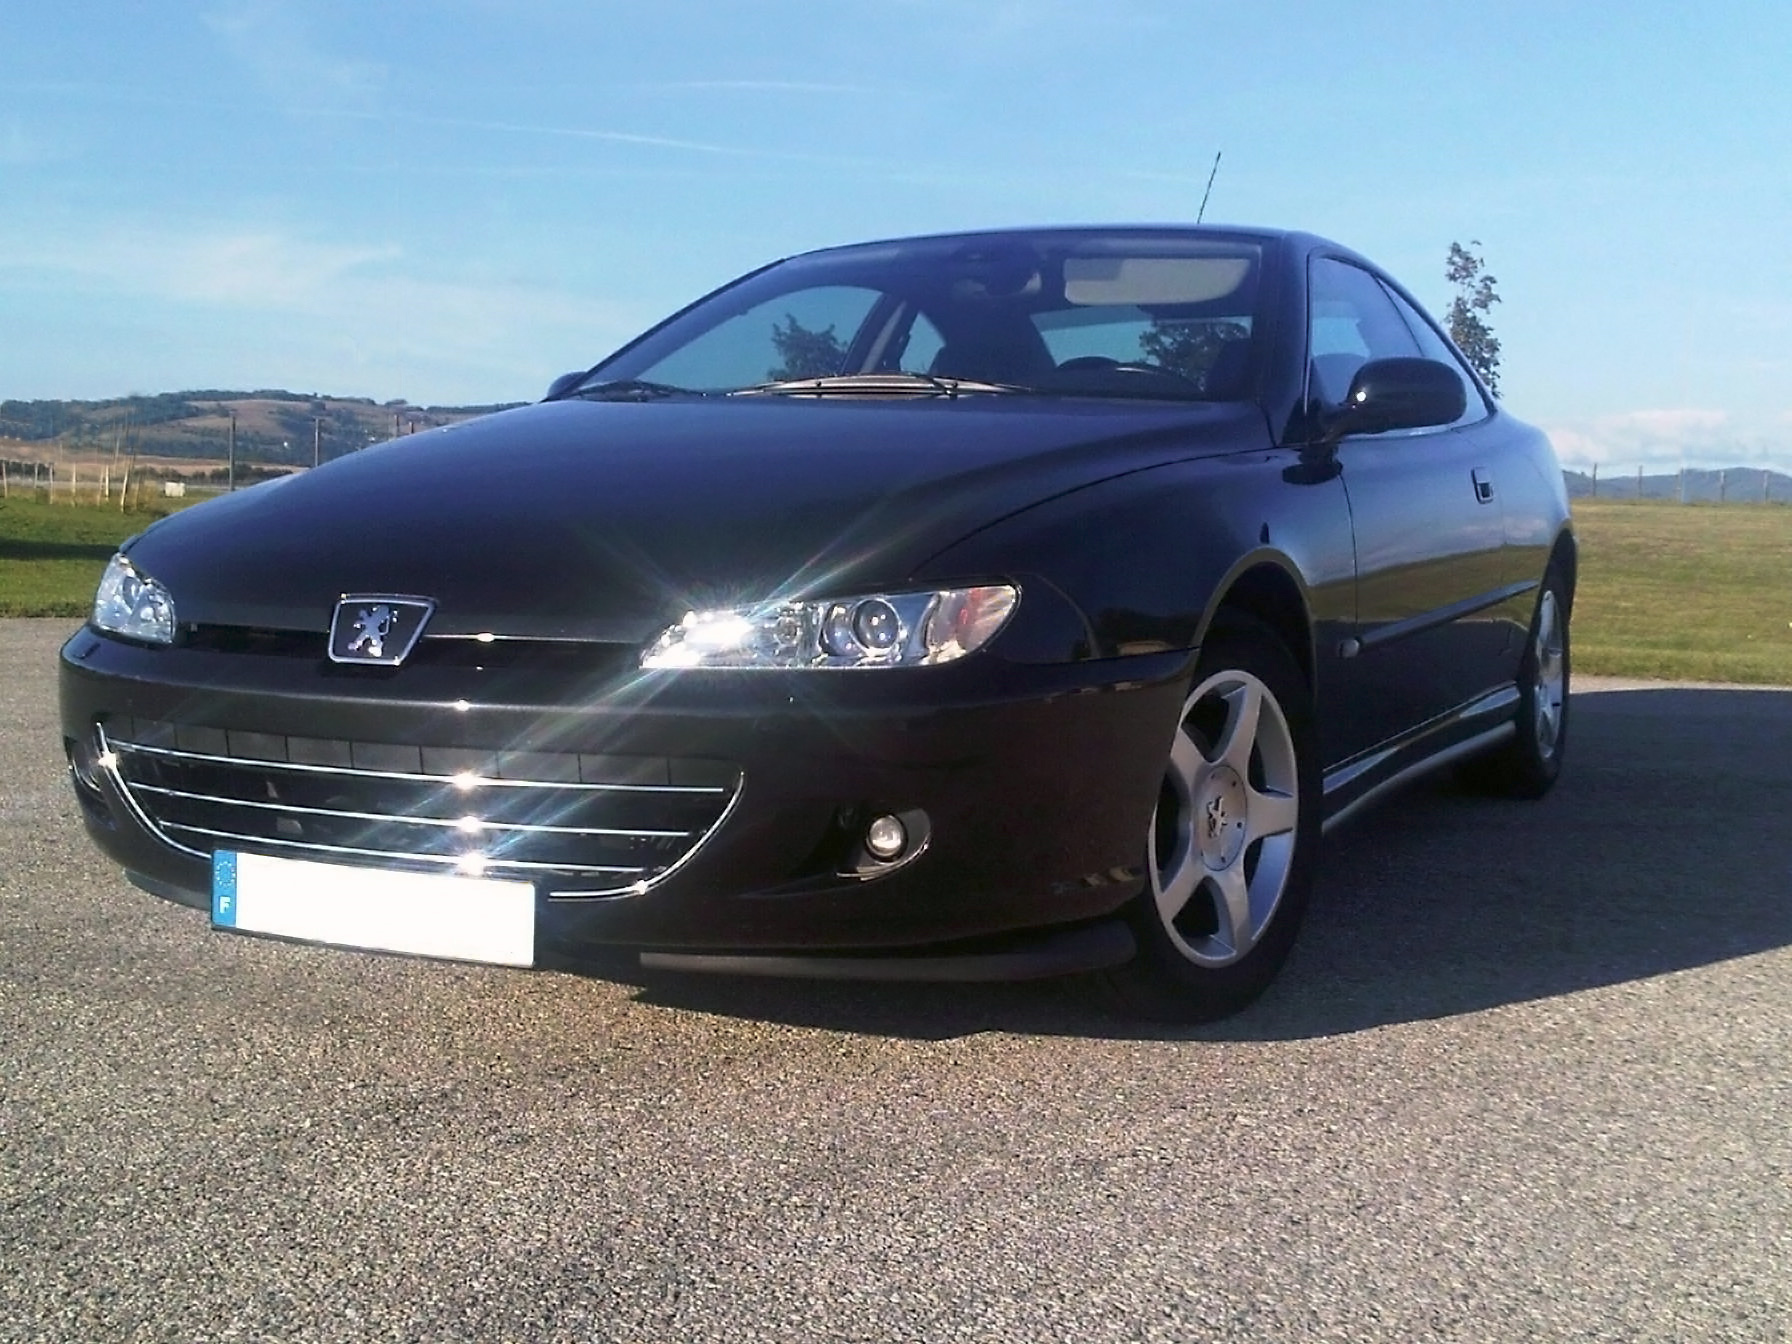 Peugeot 406 Coupé Ultima Edizione photo 01